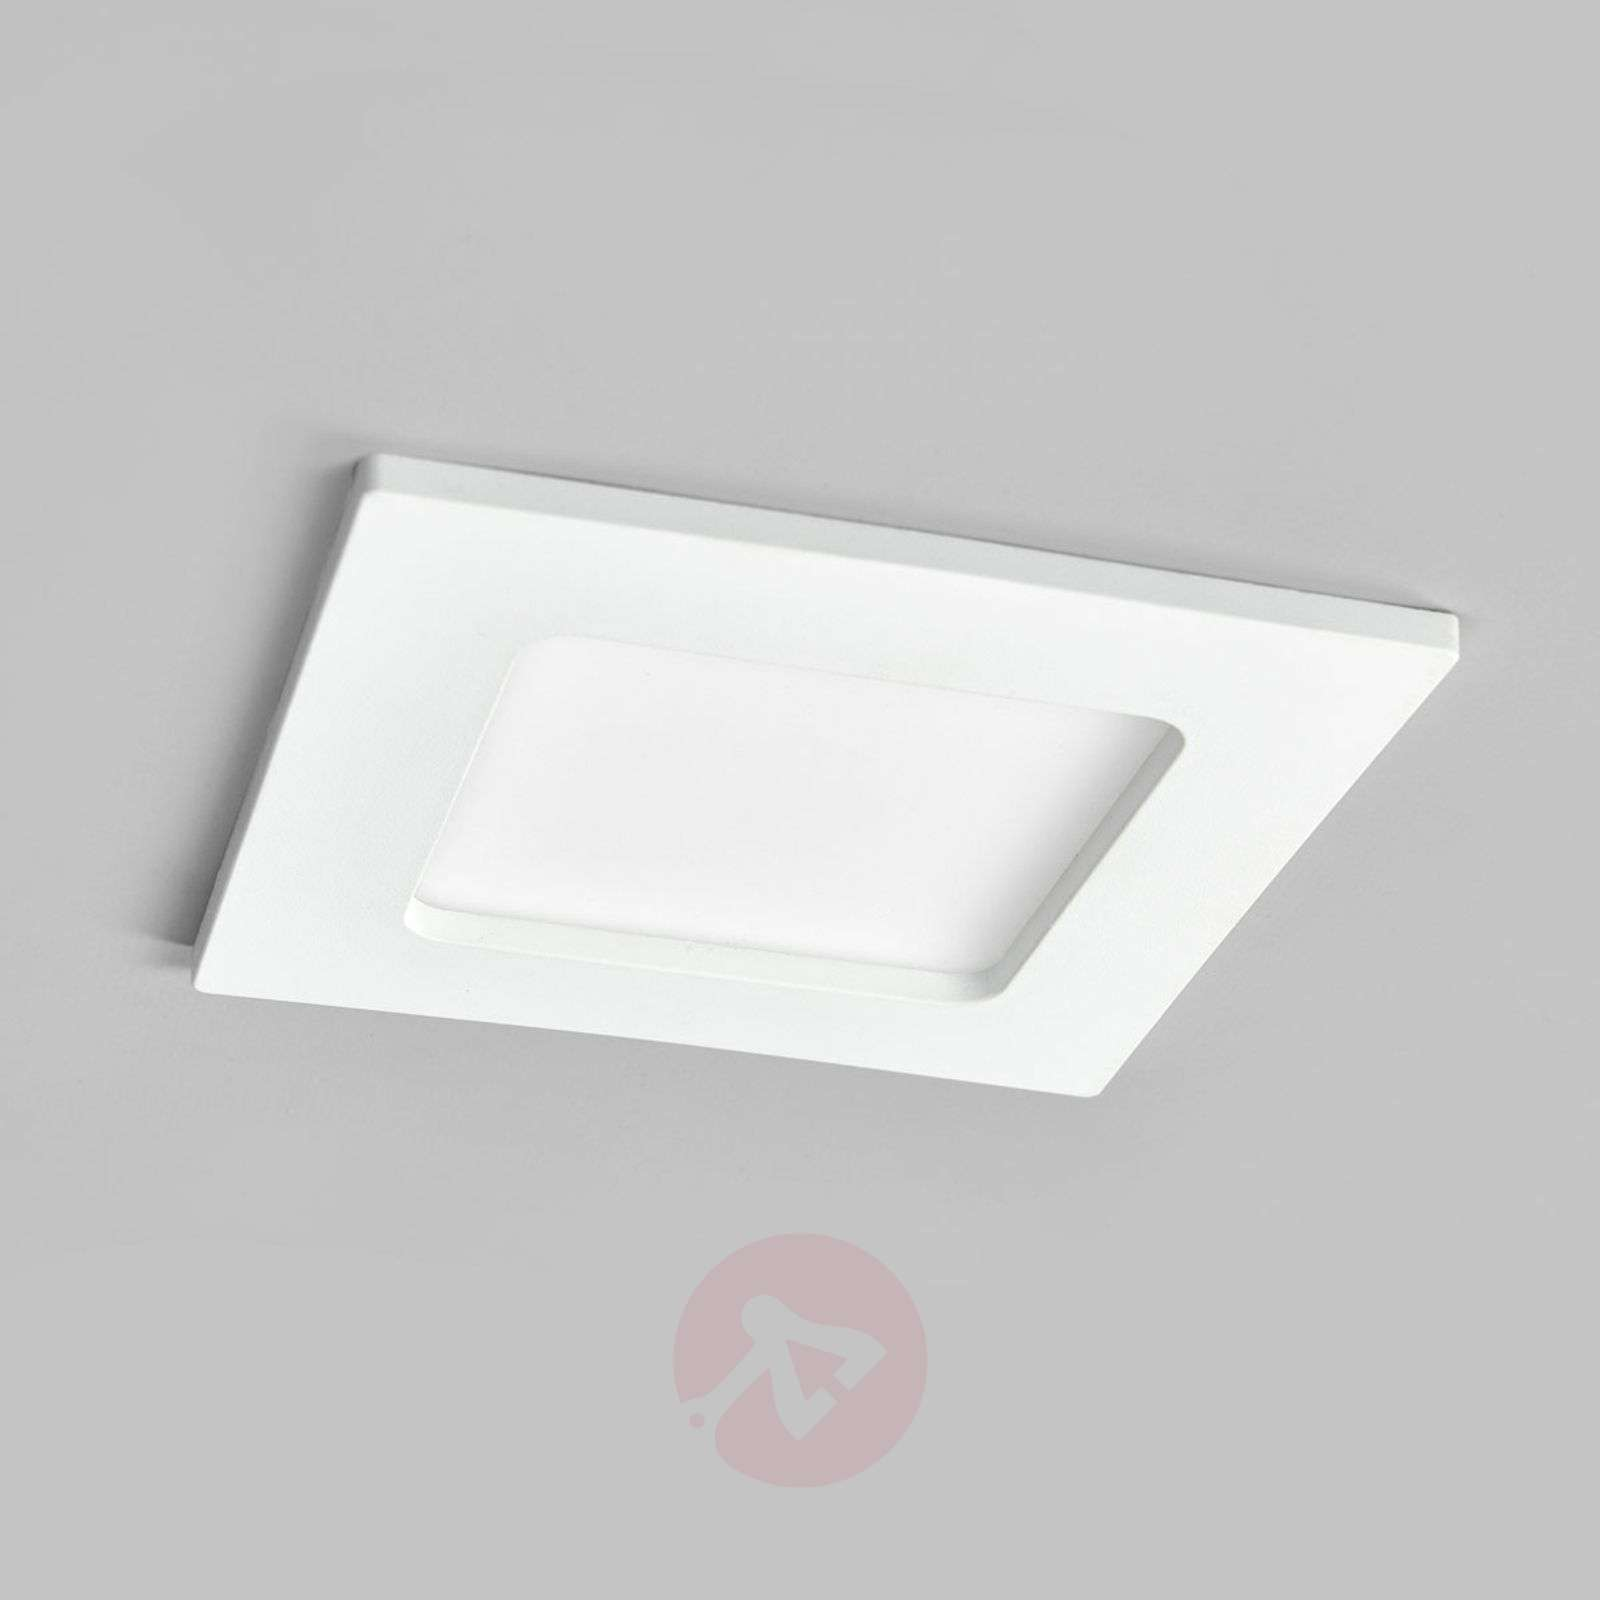 Spot encastrable Joki blanc, LED IP44-9978060-02